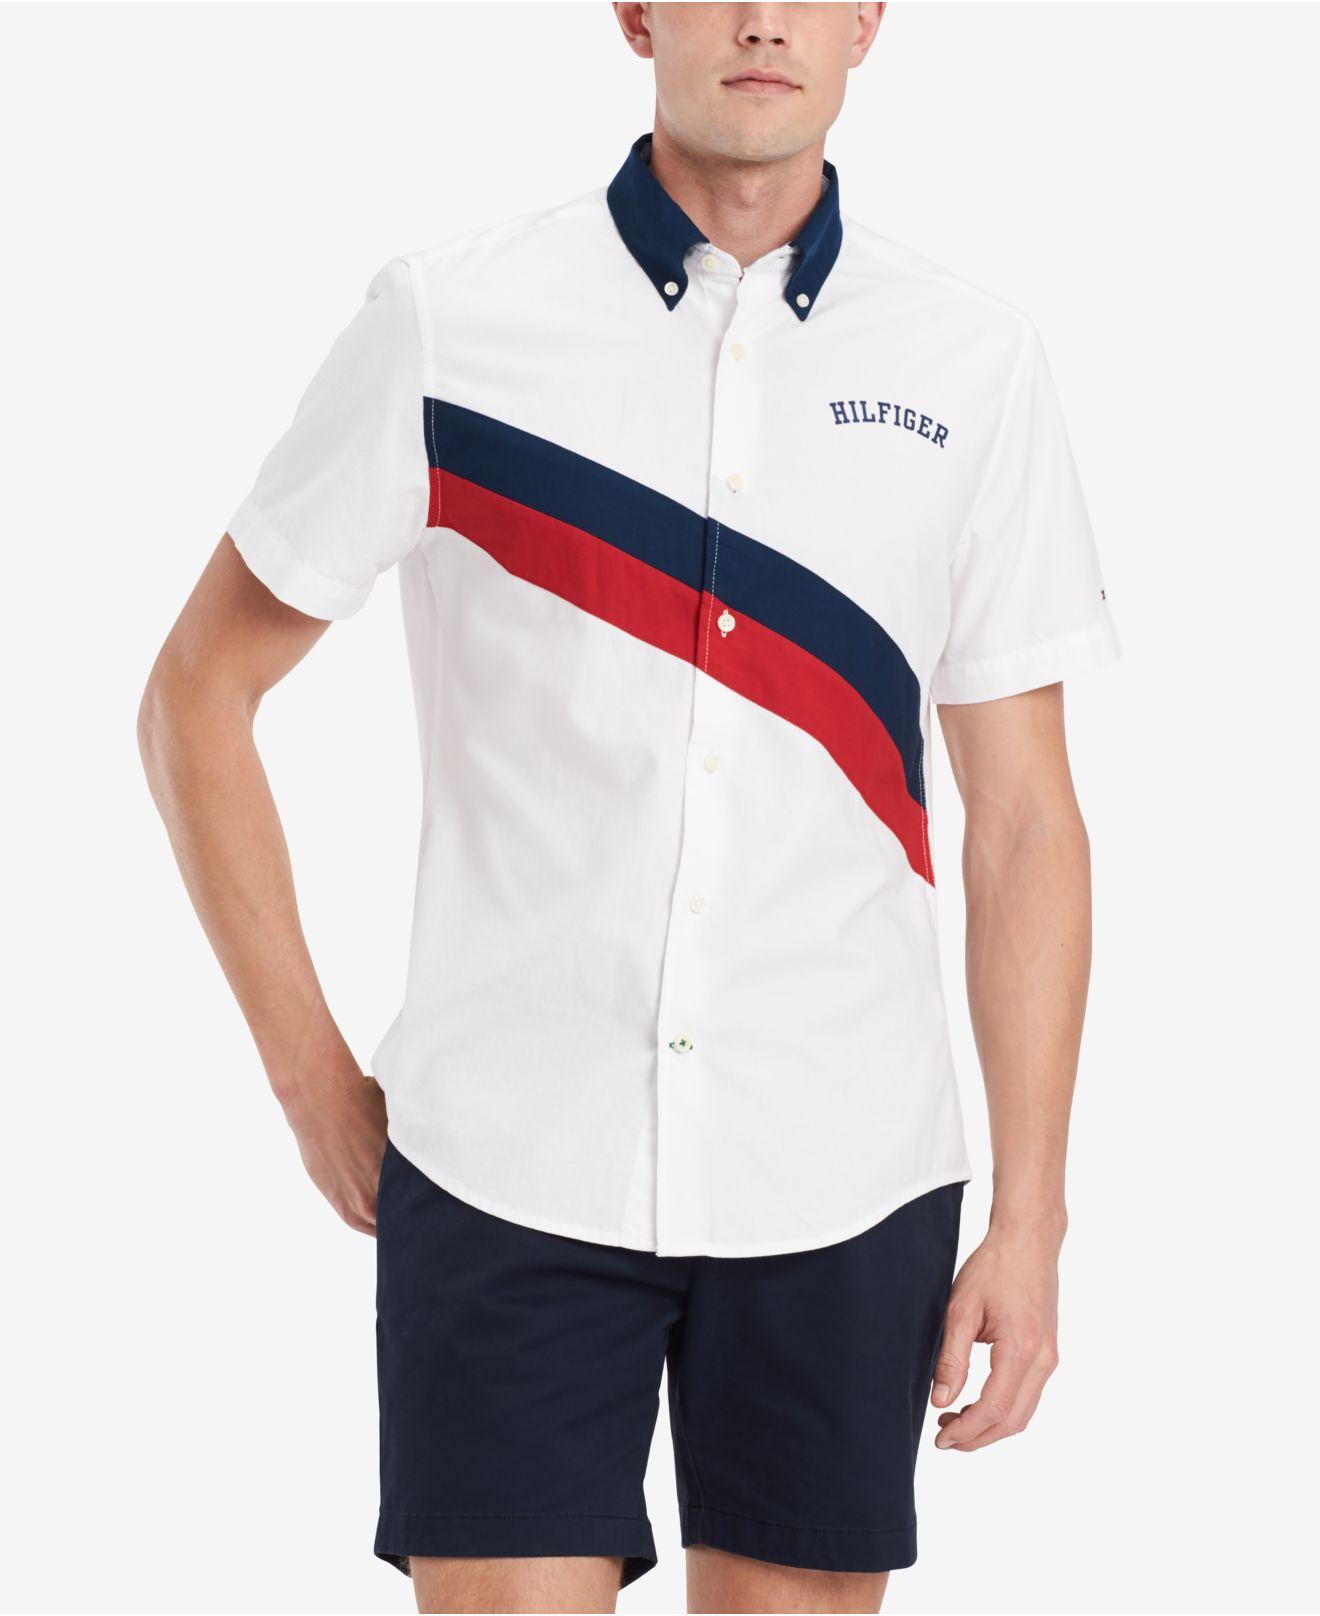 b2cba654bb1 Lyst - Tommy Hilfiger Sash Block Shirt, Created For Macy's in White ...